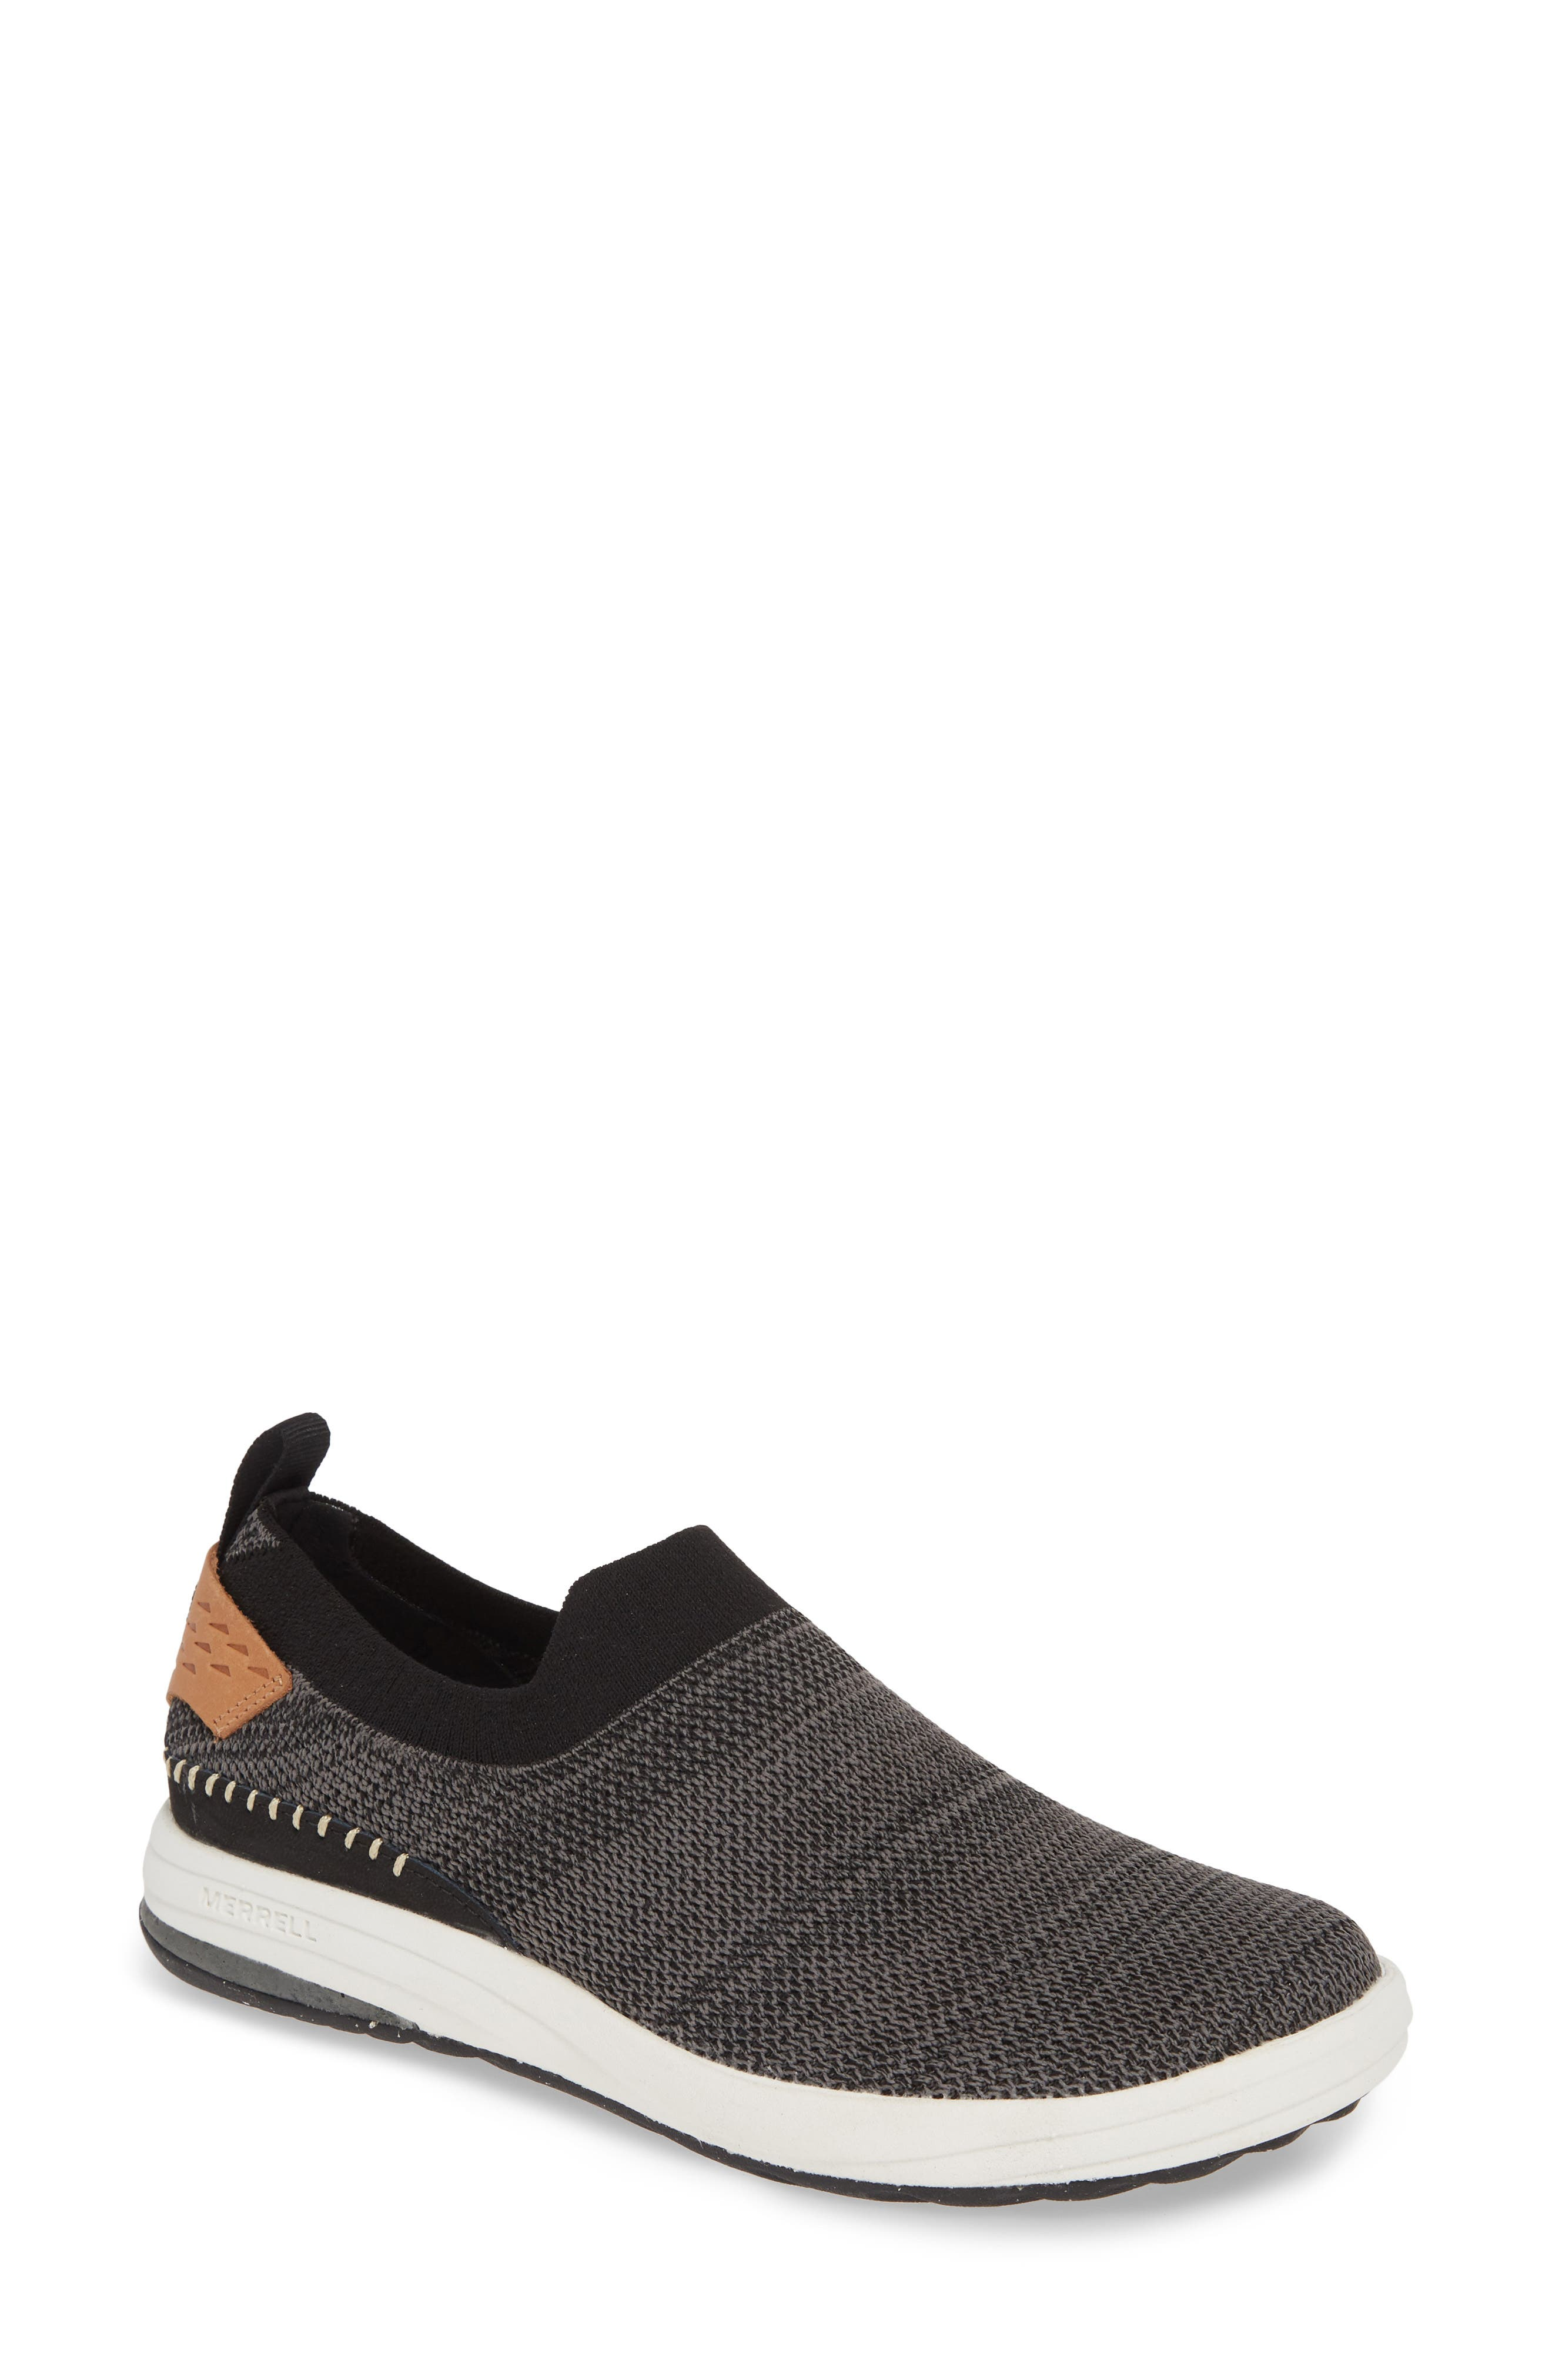 Image of Merrell Gridway Moc Sneaker